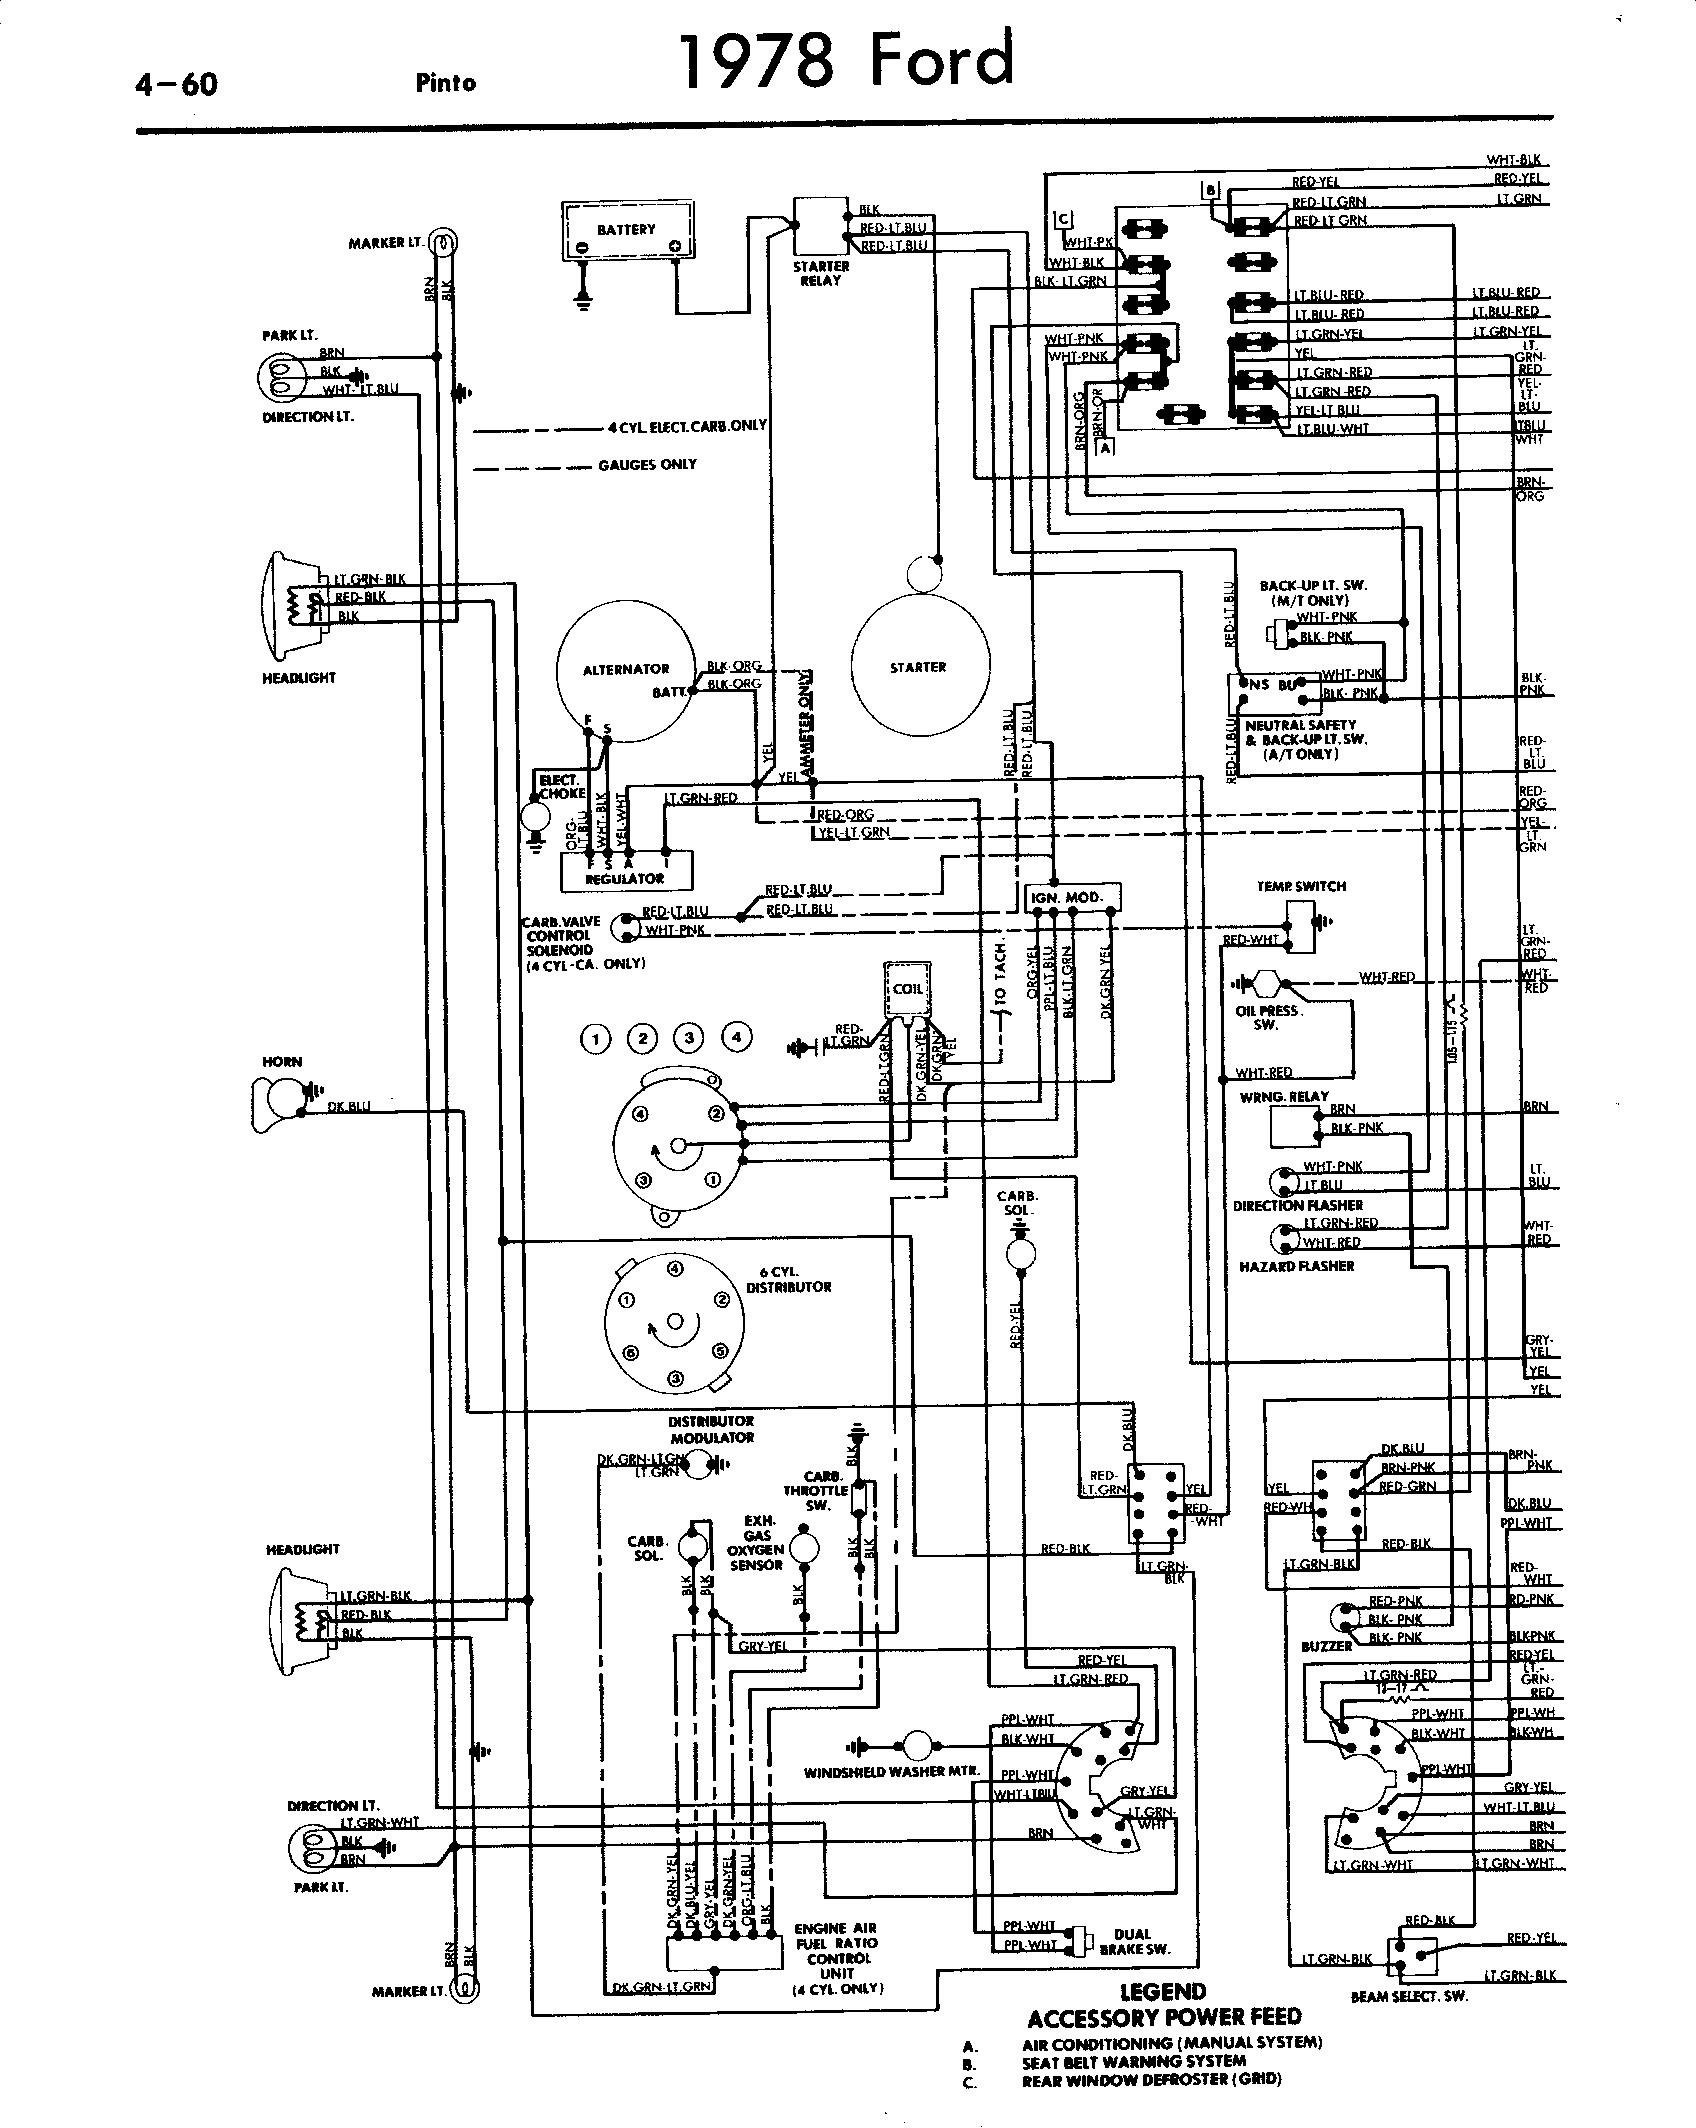 6 0 ford engine wiring harness wiring library 85 ford alternator wiring diagram ford pinto wiring harness explore schematic wiring diagram u2022 rh webwiringdiagram today 1996 ford ranger radio